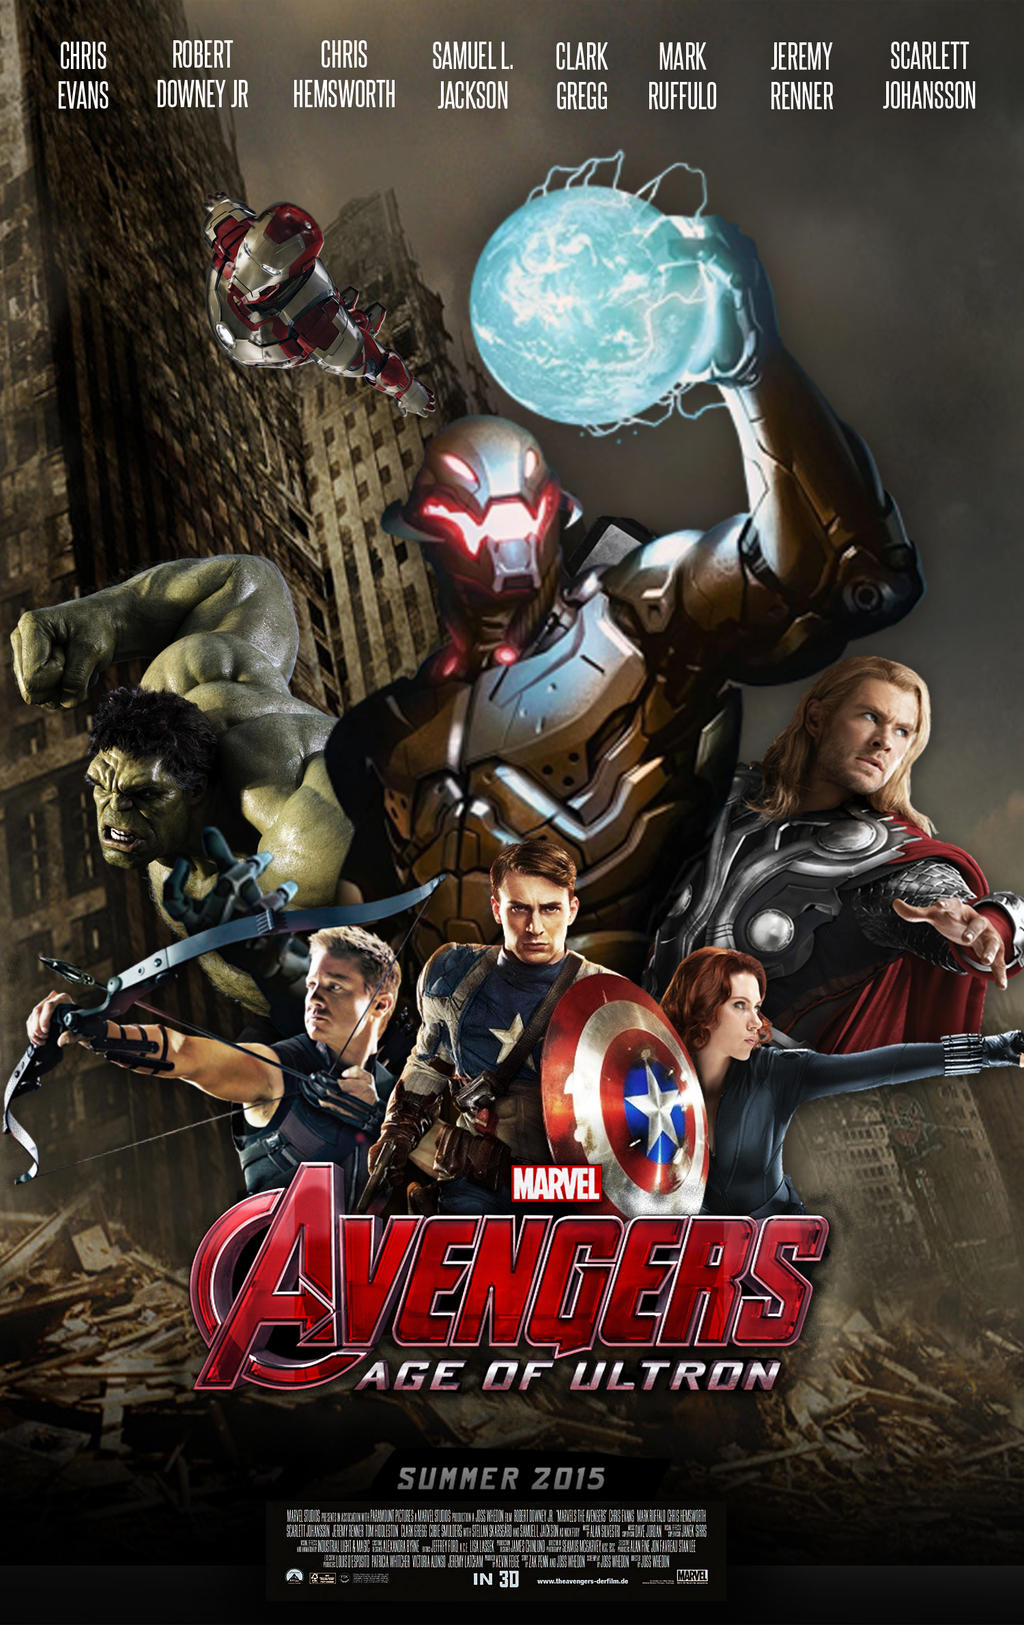 Avengers Age Of Ultron By Iloegbunam On Deviantart: Age Of Ultron By Littlemissromanoff On DeviantArt